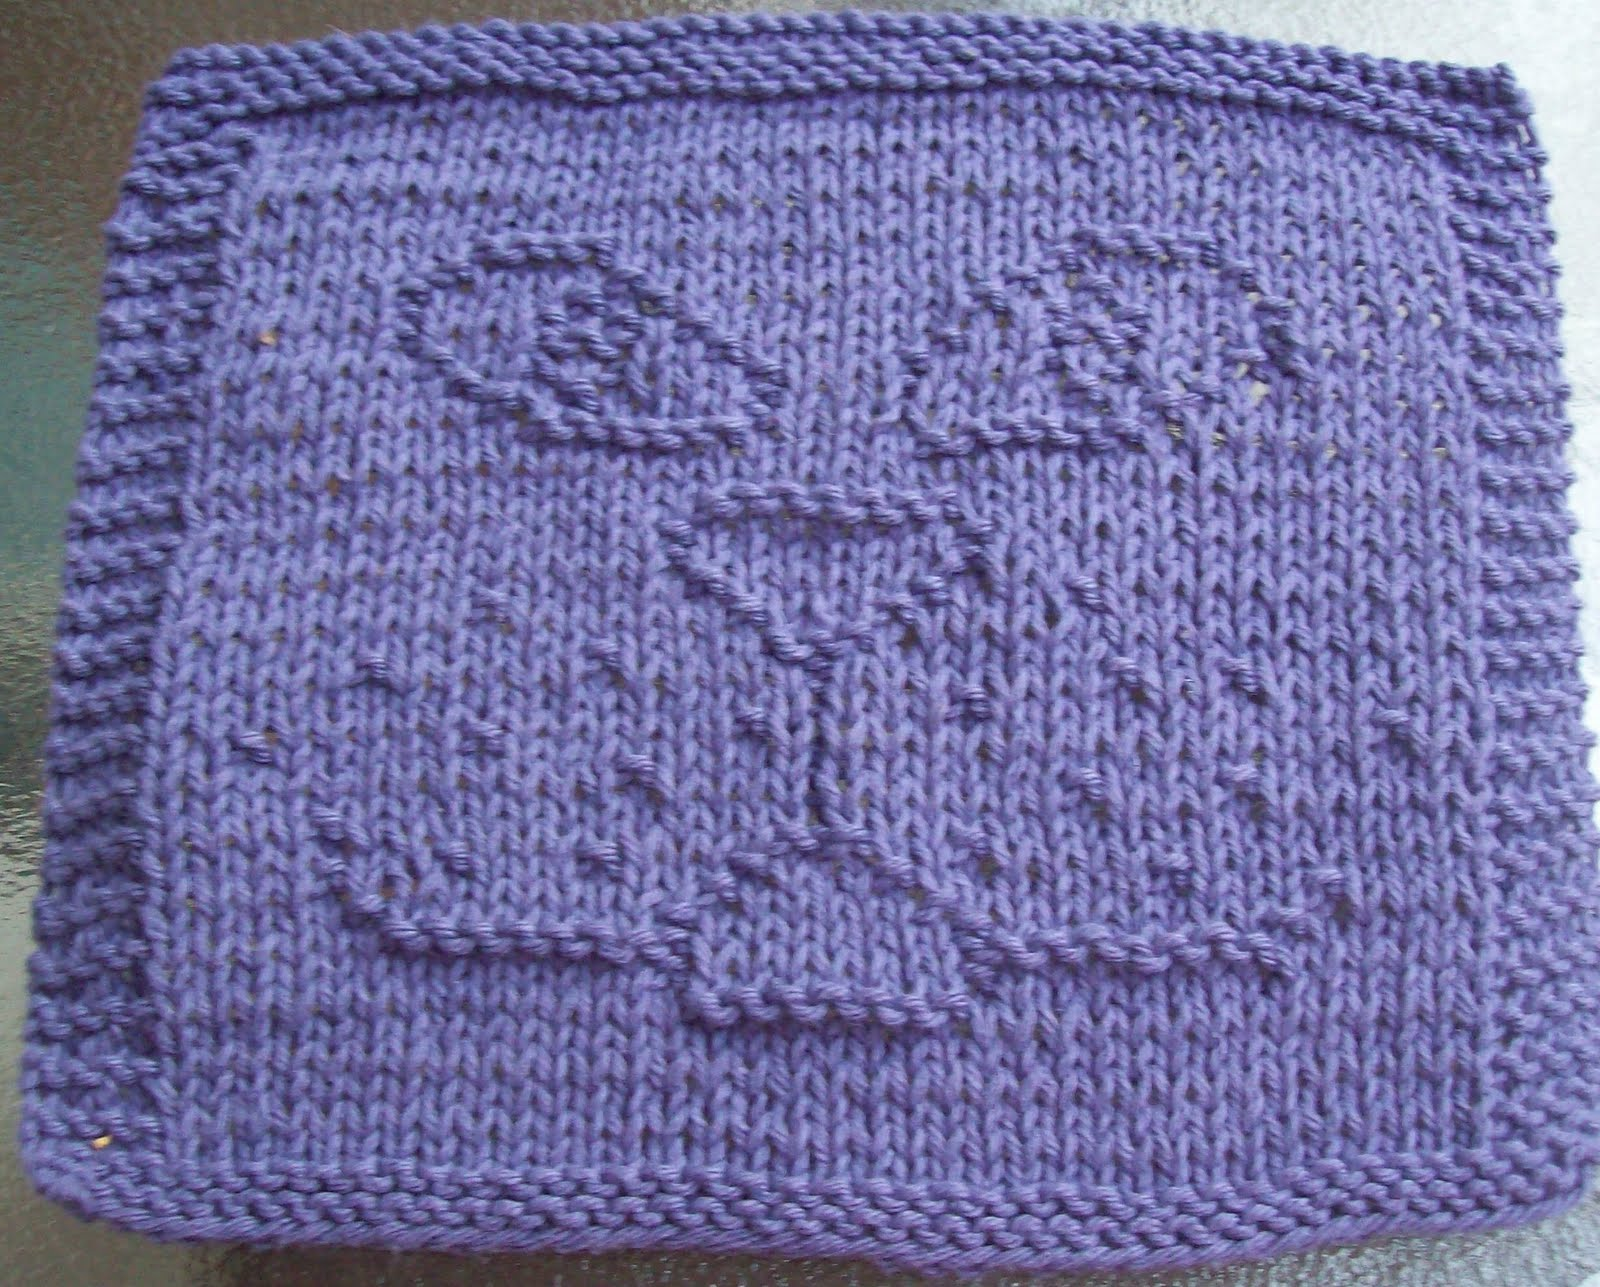 Knitted Dishcloth Patterns : DigKnitty Designs: Cat Face Knit Dishcloth Pattern